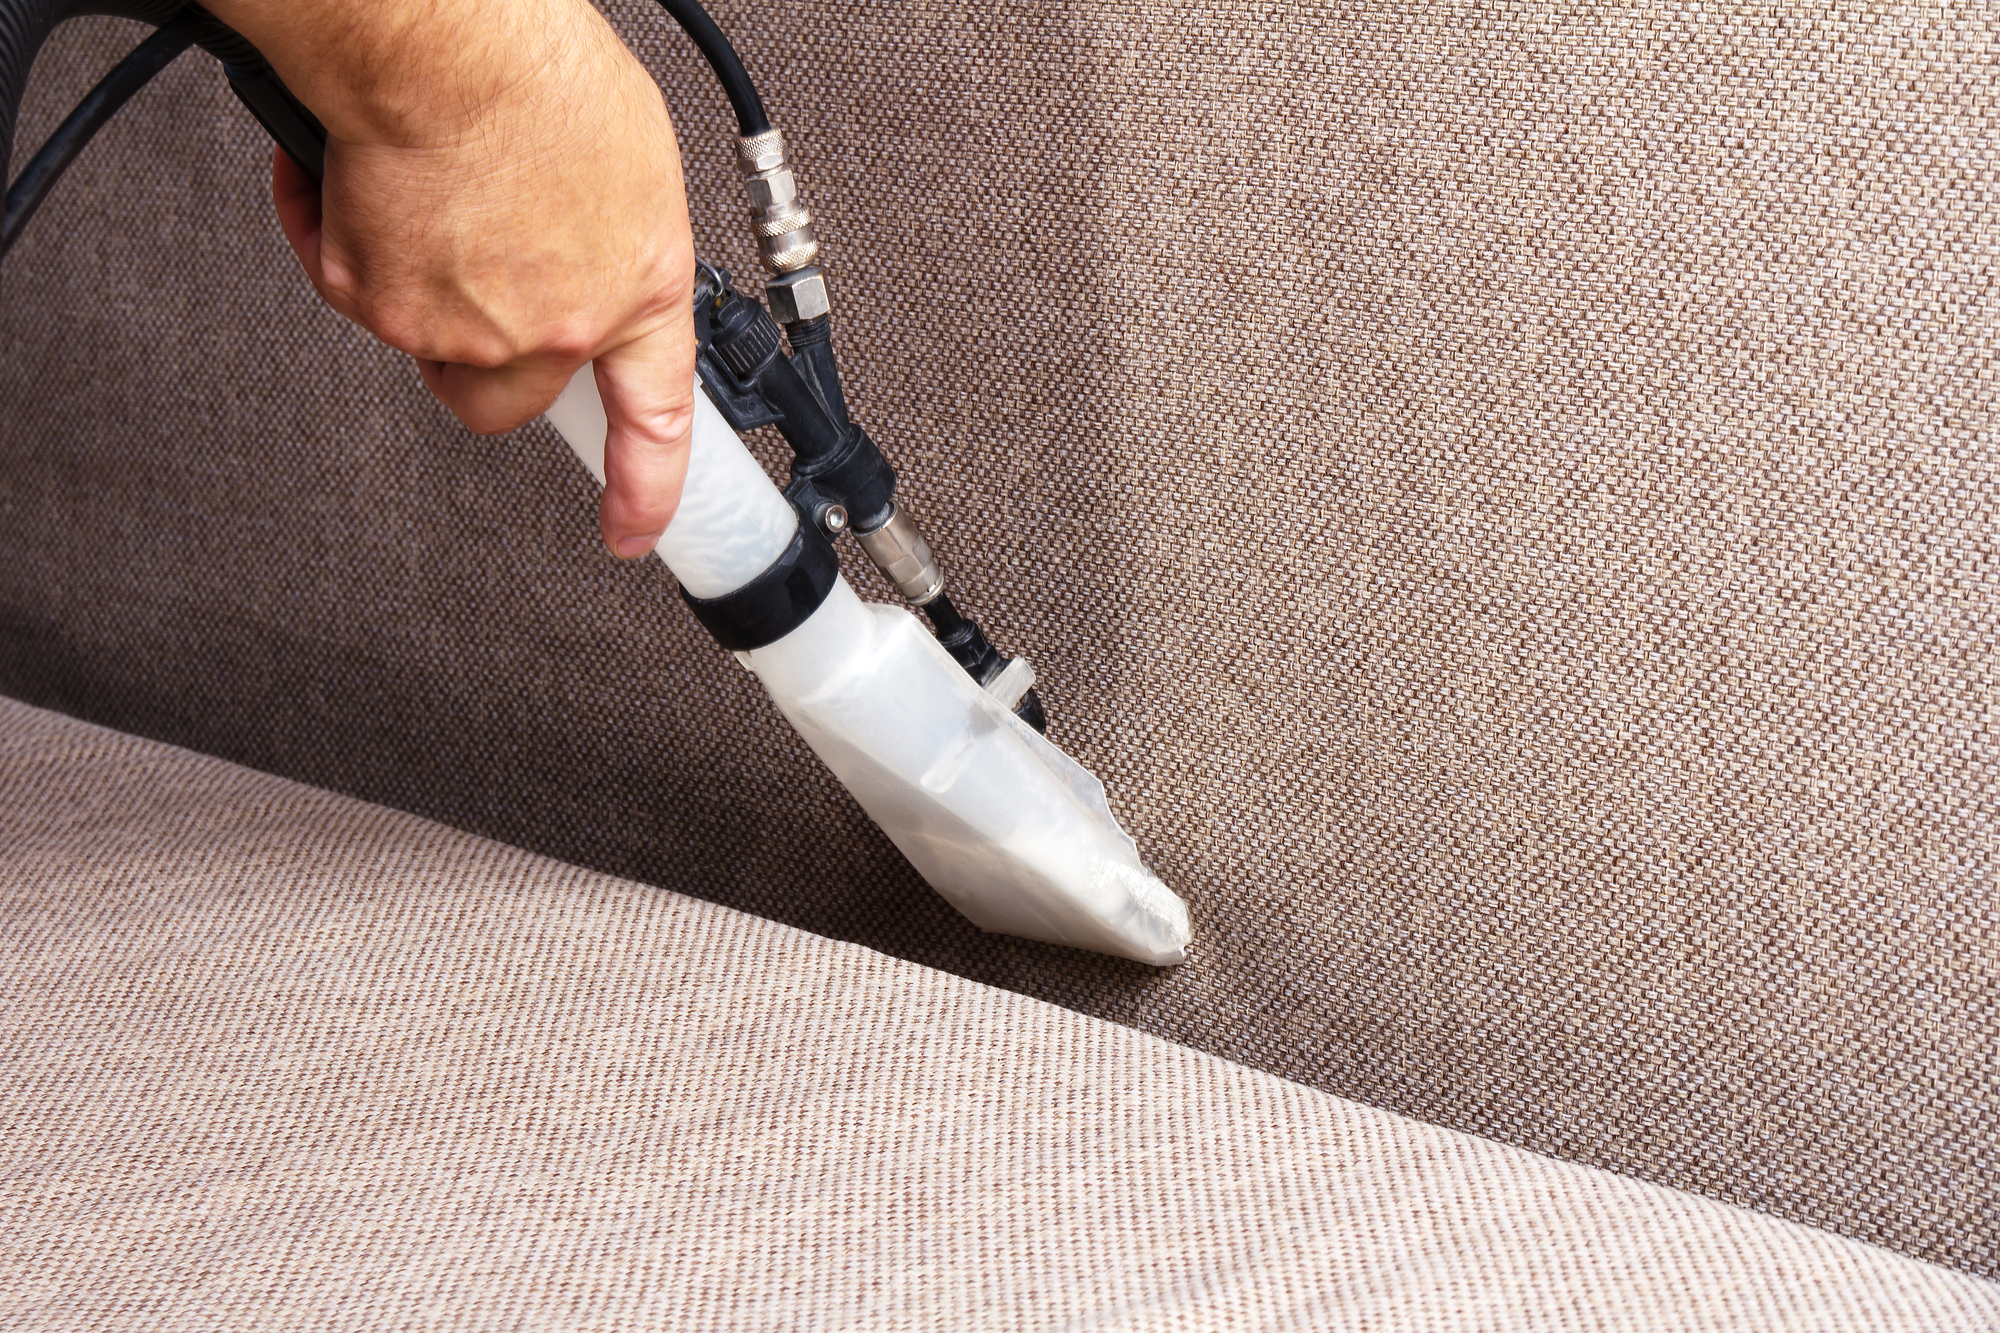 Novasteam is a Richland professional upholstery cleaning services company